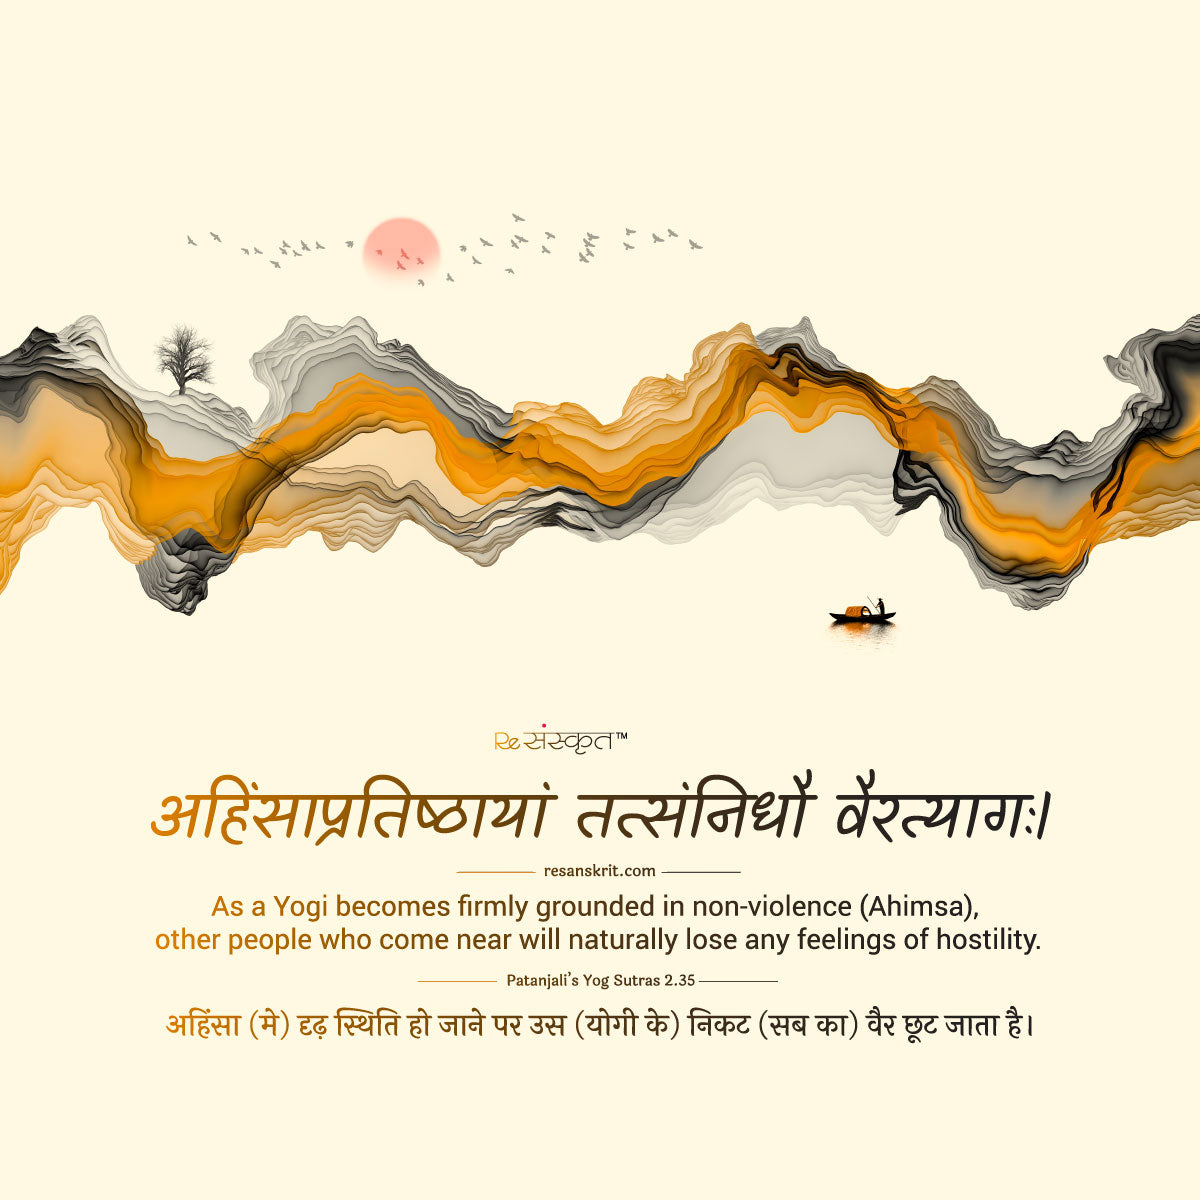 Sanskrit Quote on Non-Violence -Patanjali's Yoga Sutras 2.35